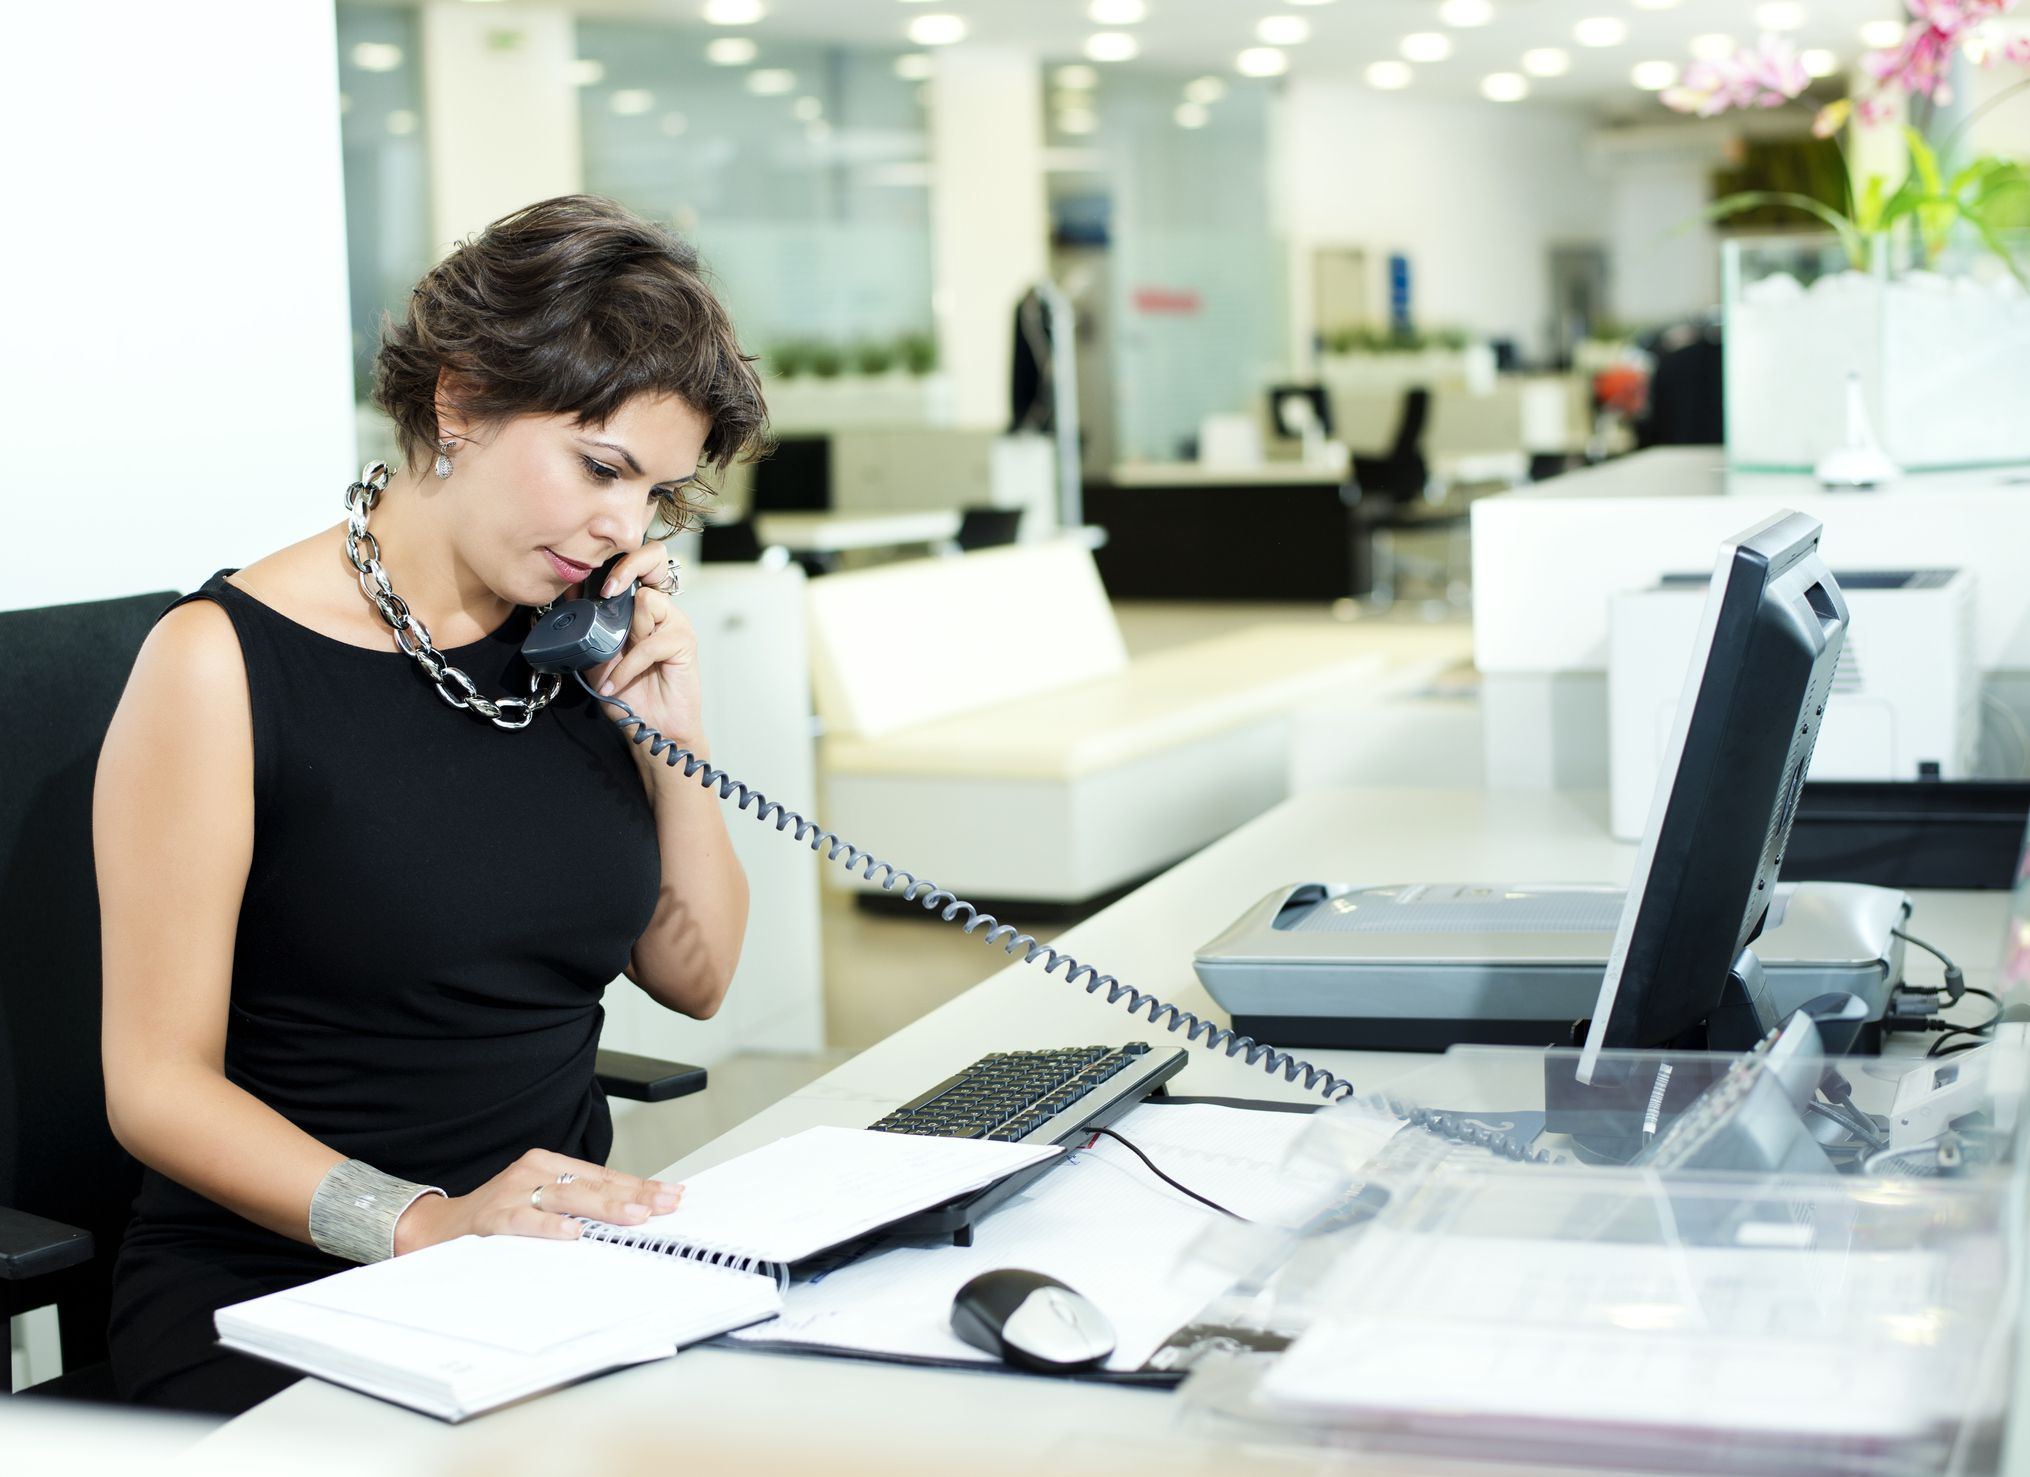 Common Receptionist Interview Questions and Best Answers